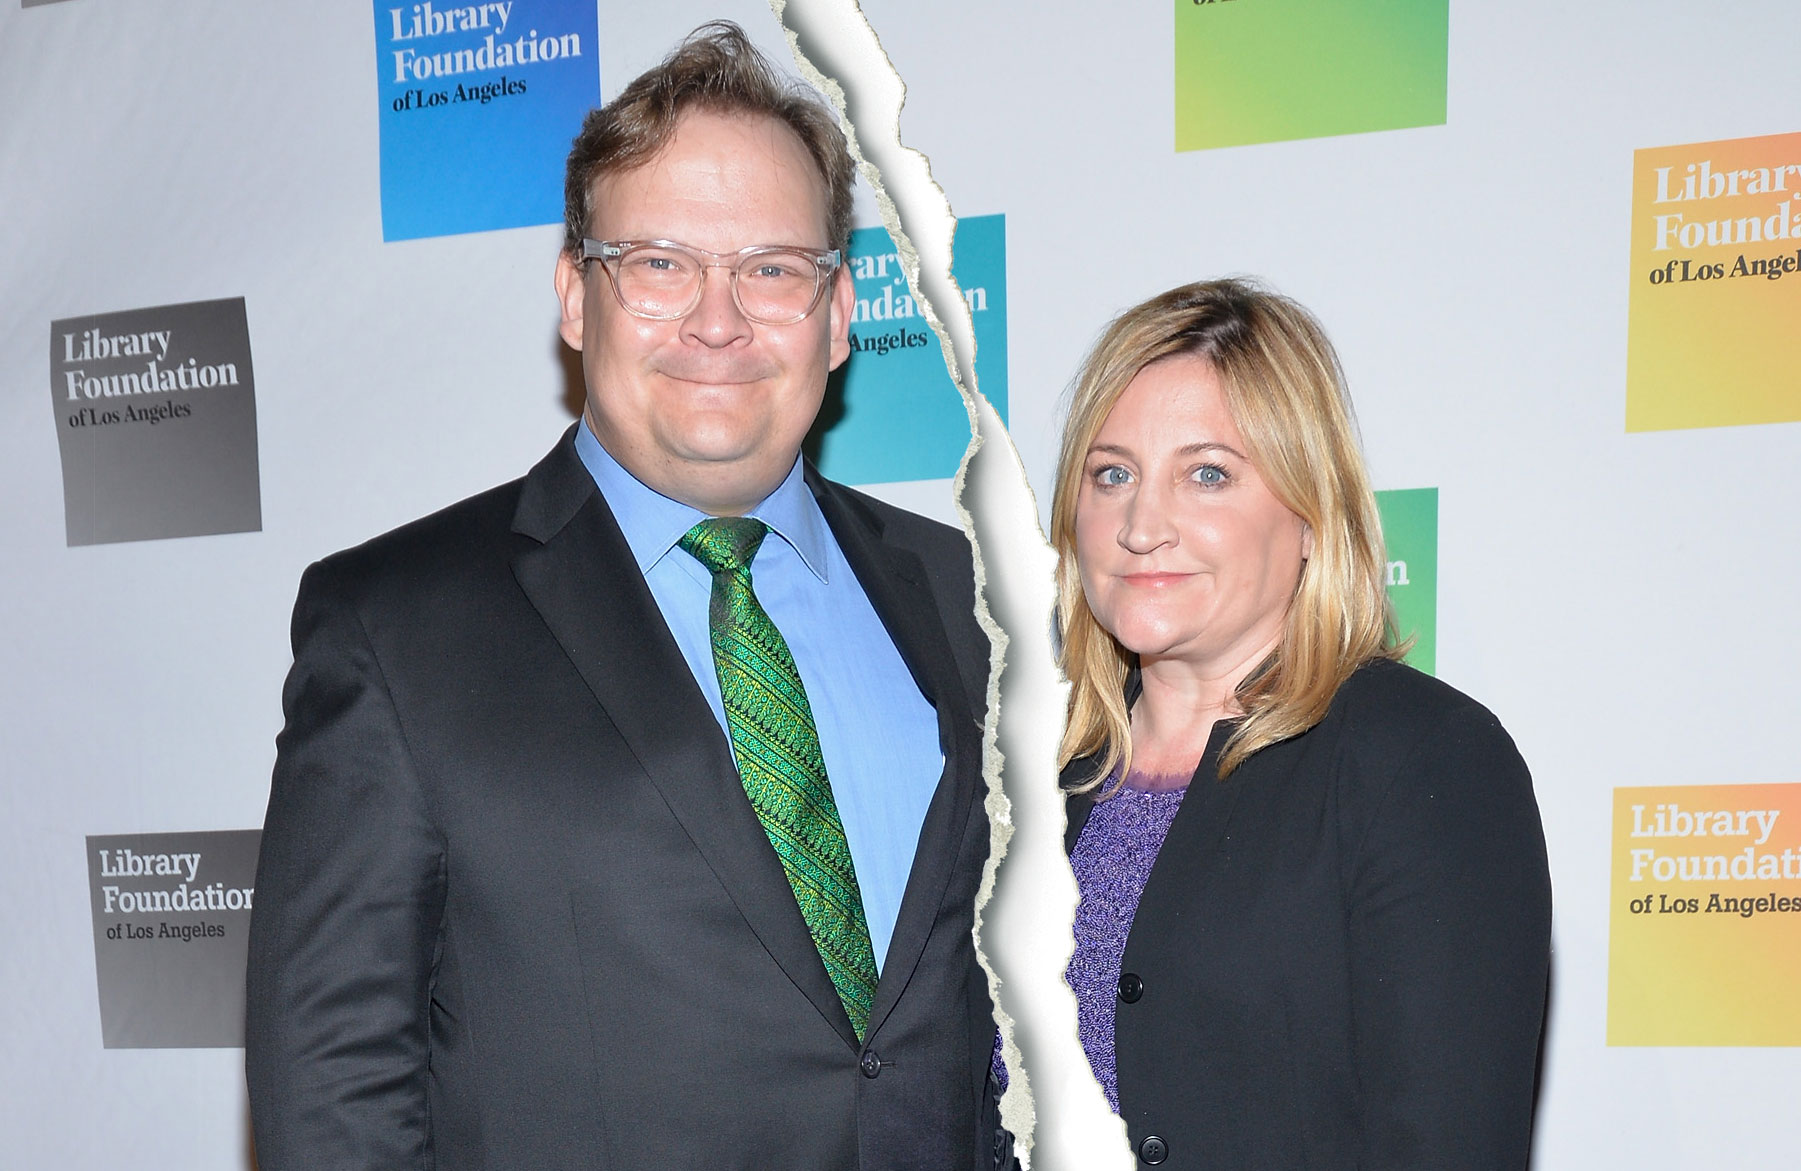 """Andy Richter Sarah Thyre Split - The comedian and his wife split after more than 20 years together. """"It is with sadness that Sarah and I announce that we have separated and have begun divorce proceedings,"""" the Richter, 52, wrote on Twitter in April."""